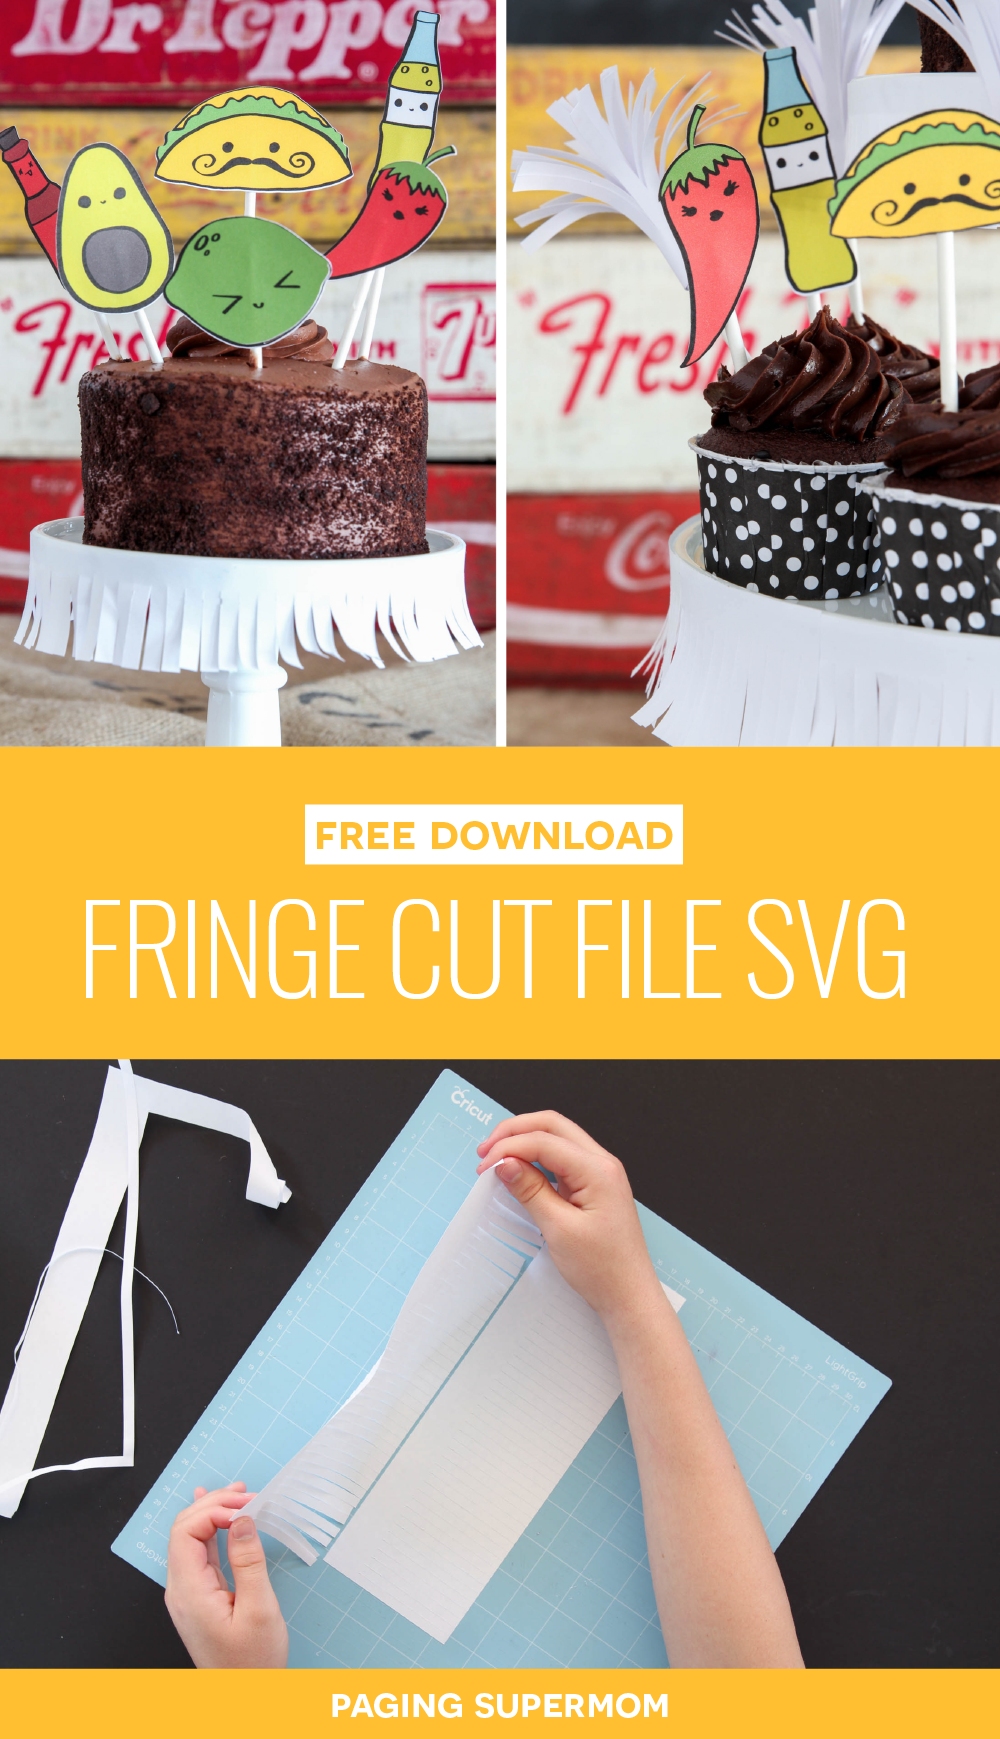 Super-Easy DIY Fringe Cake Stand with FREE Cut File - SVG to use with Cricut or other Cutting Machine for easy Fiesta Decor via @PagingSupermom